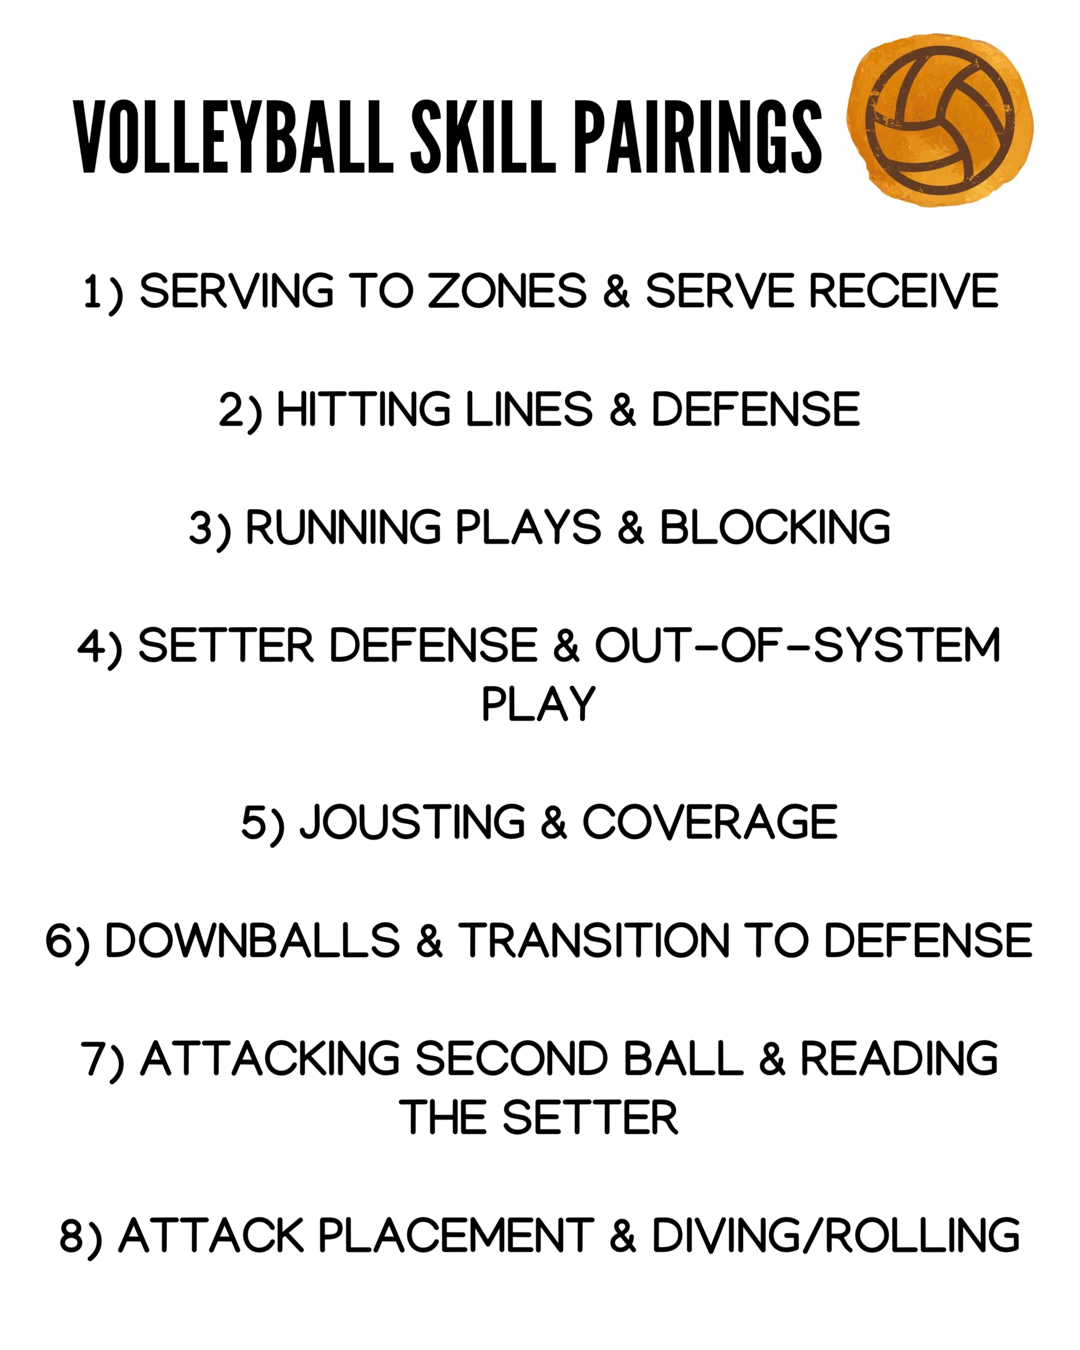 Serve And Serve Receive Volleyball Drill Pairings Coaching Volleyball Youtube Volleyball Drills Coaching Volleyball Volleyball Skills